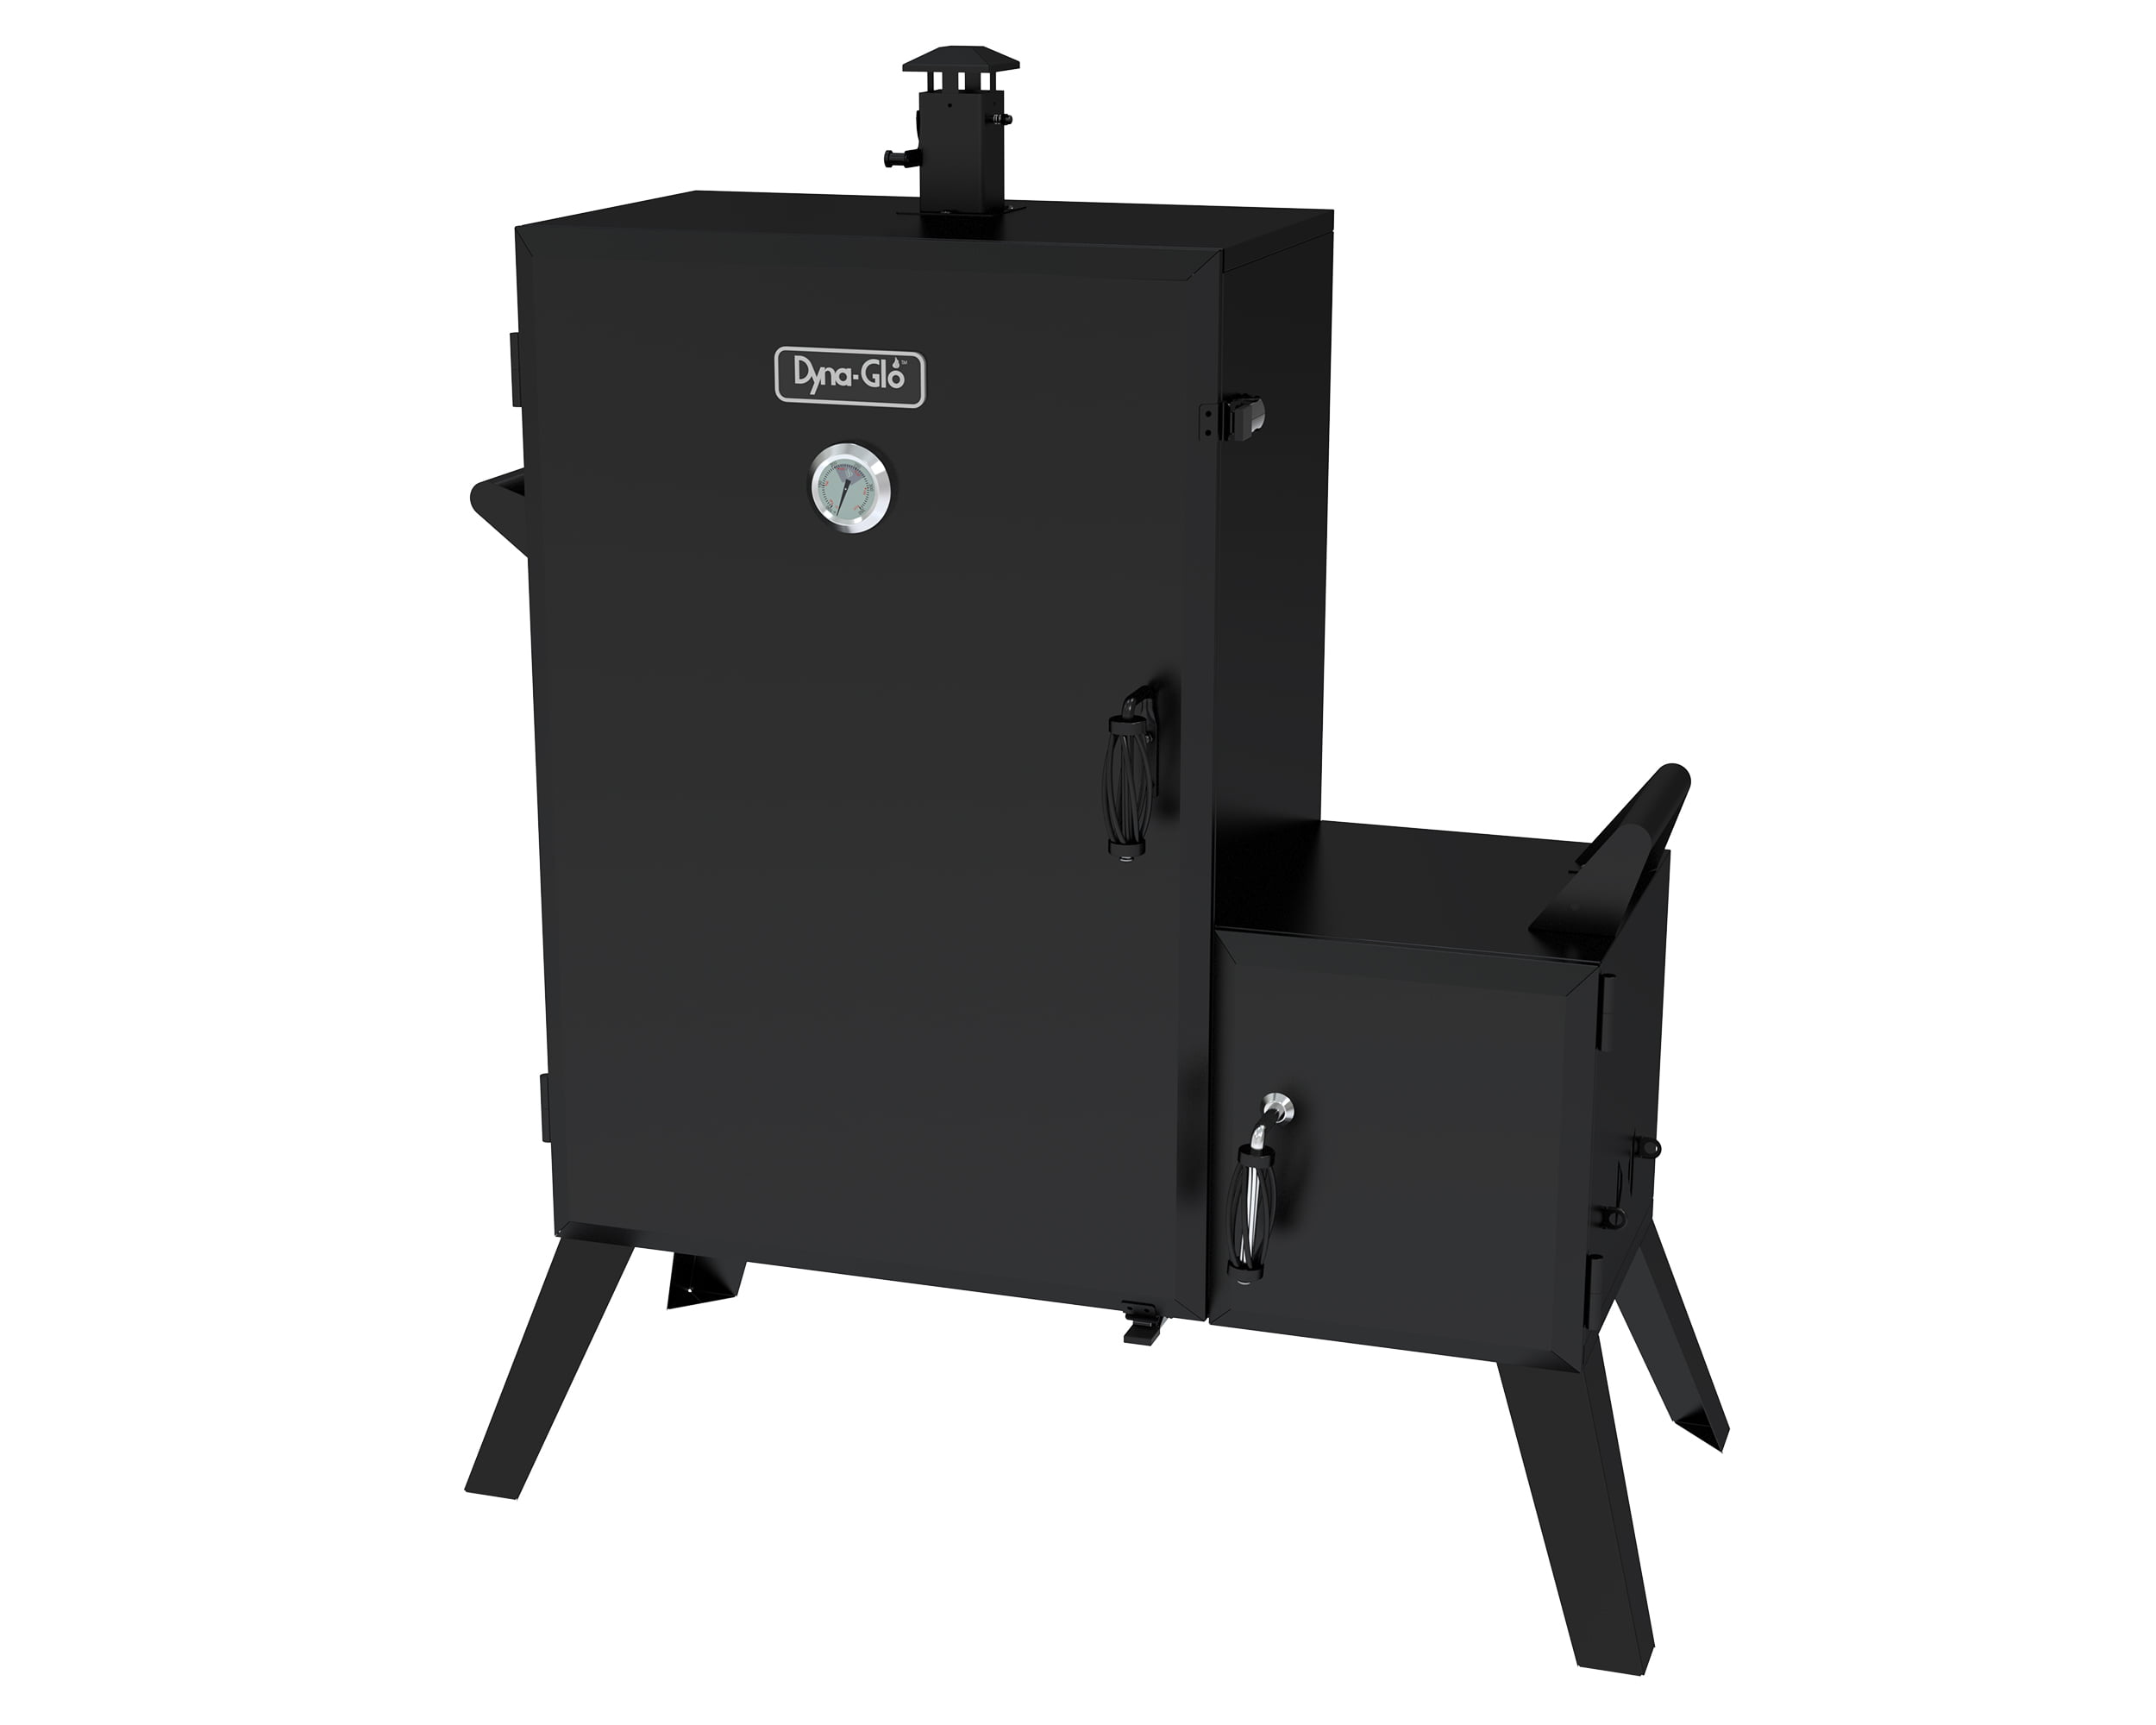 Dyna-Glo DGO1890BDC-D Wide Body Vertical Offset Charcoal Smoker by GHP Group, Inc.